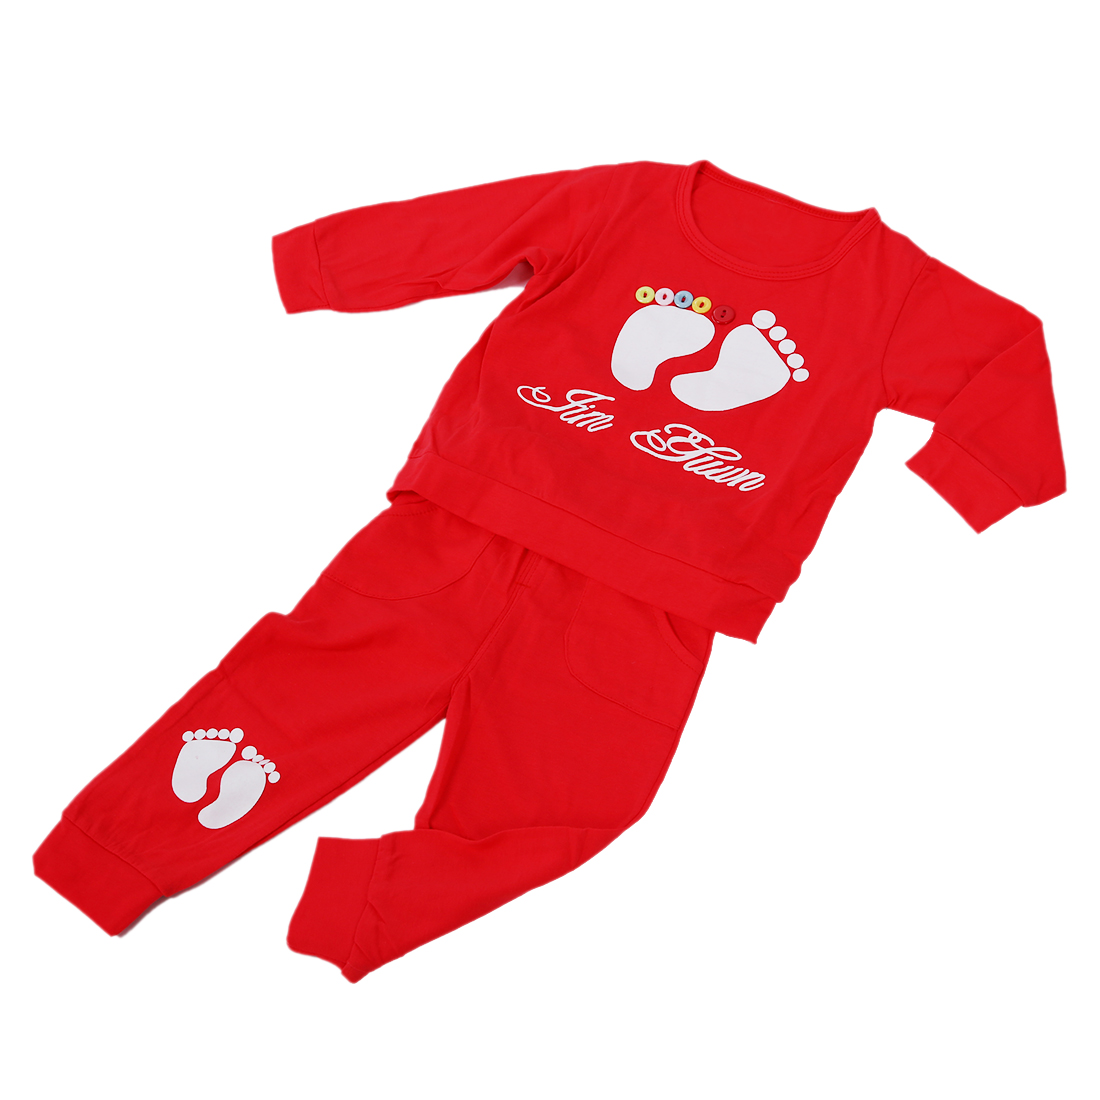 HOT SALE High Quality 100% Cotton baby clothing set,Toddlers children set,baby boys girls 2 pcs Footprints ,Hot sale-Red,73cm(